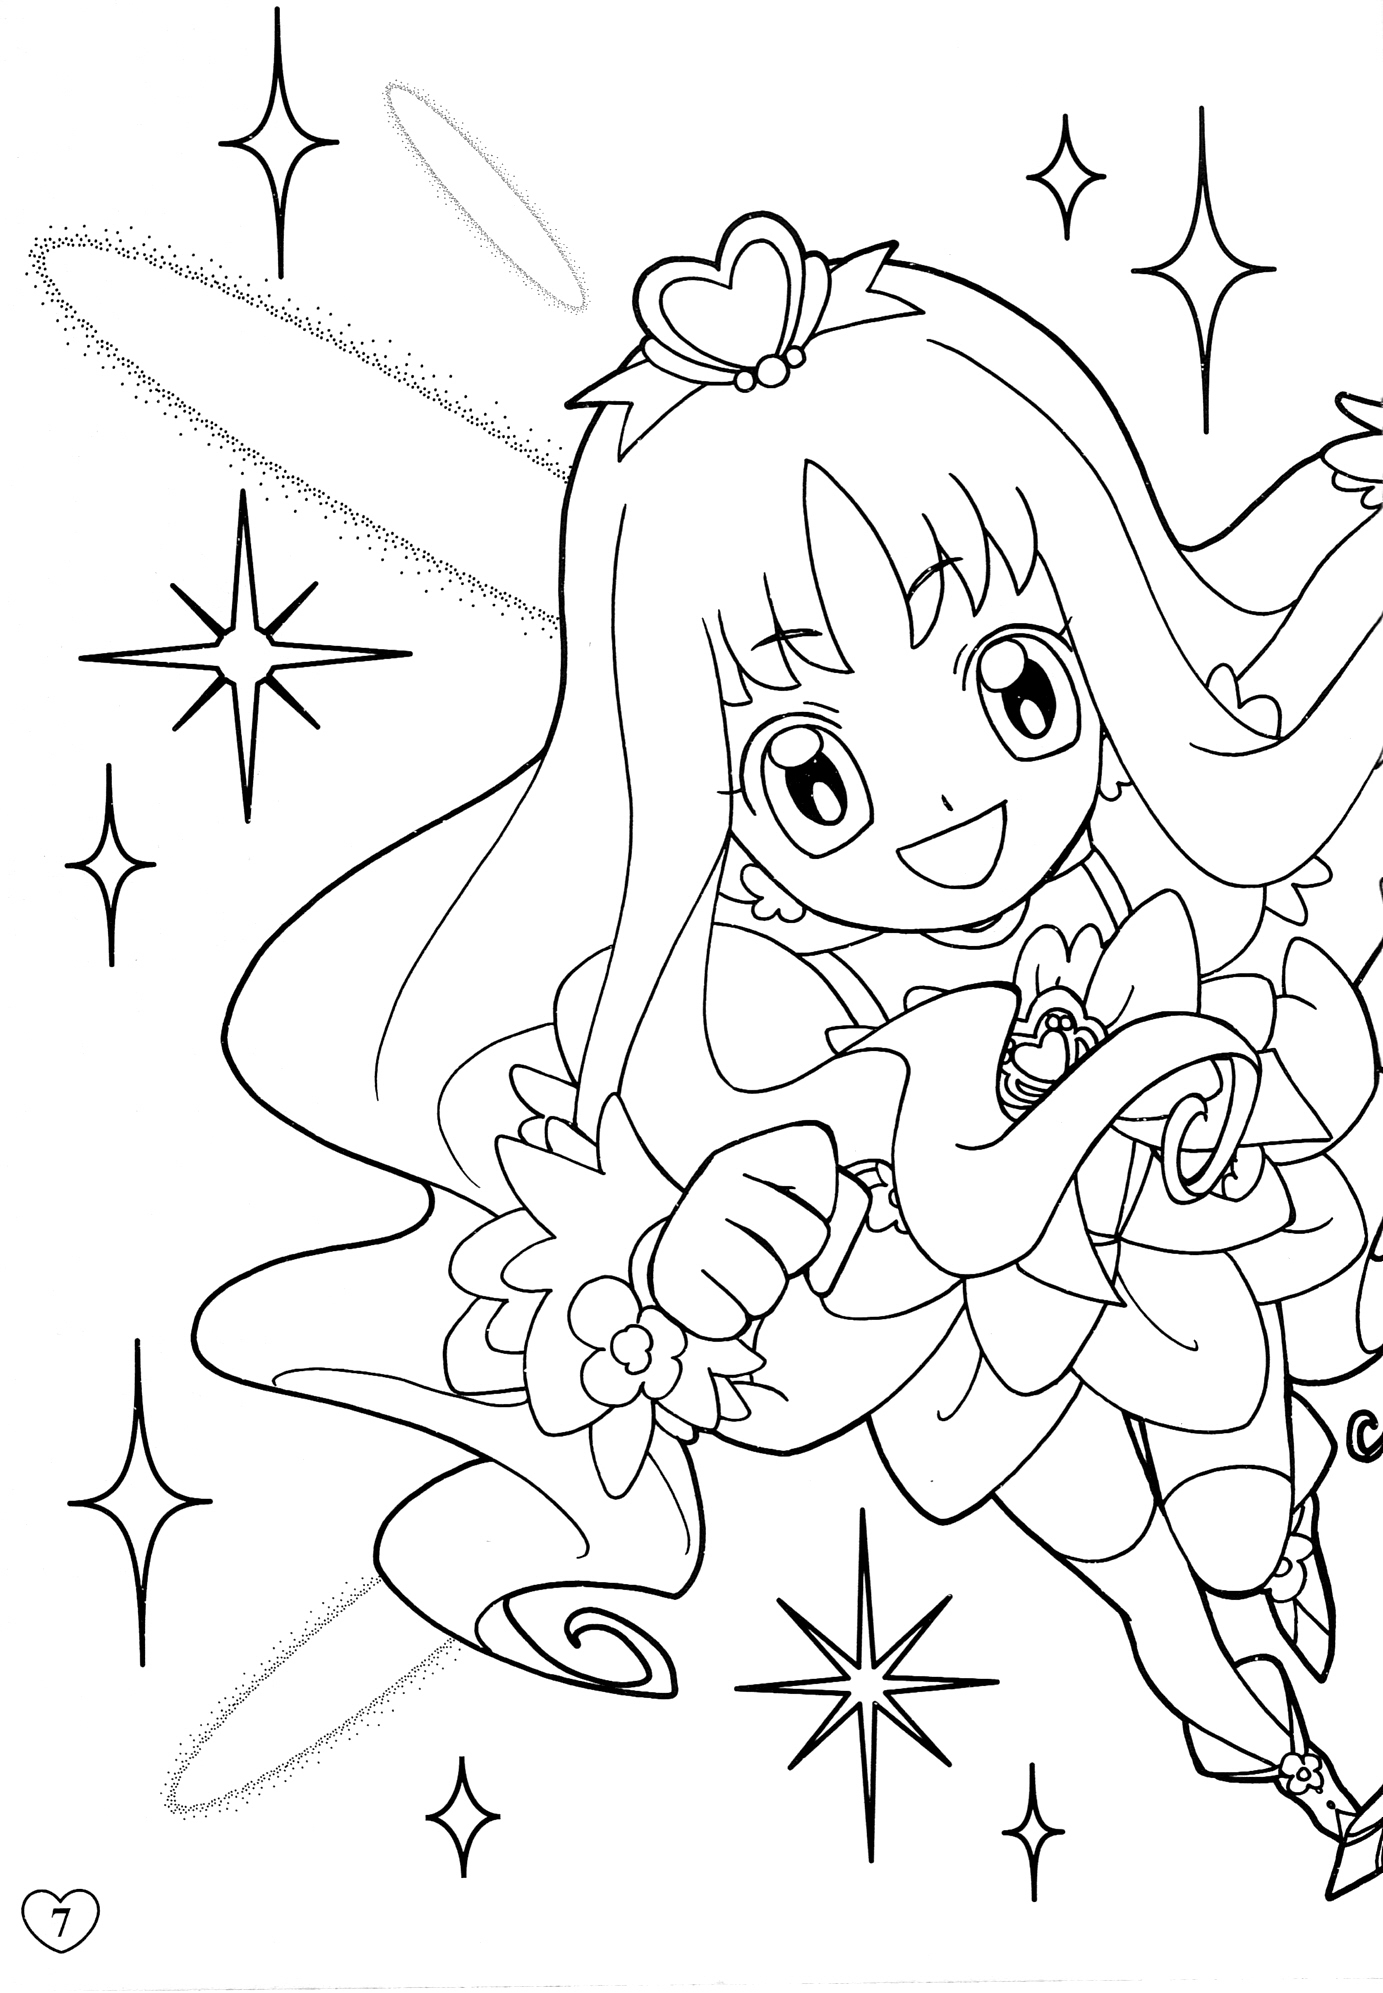 oasidelleanime precure coloring pages - photo #48